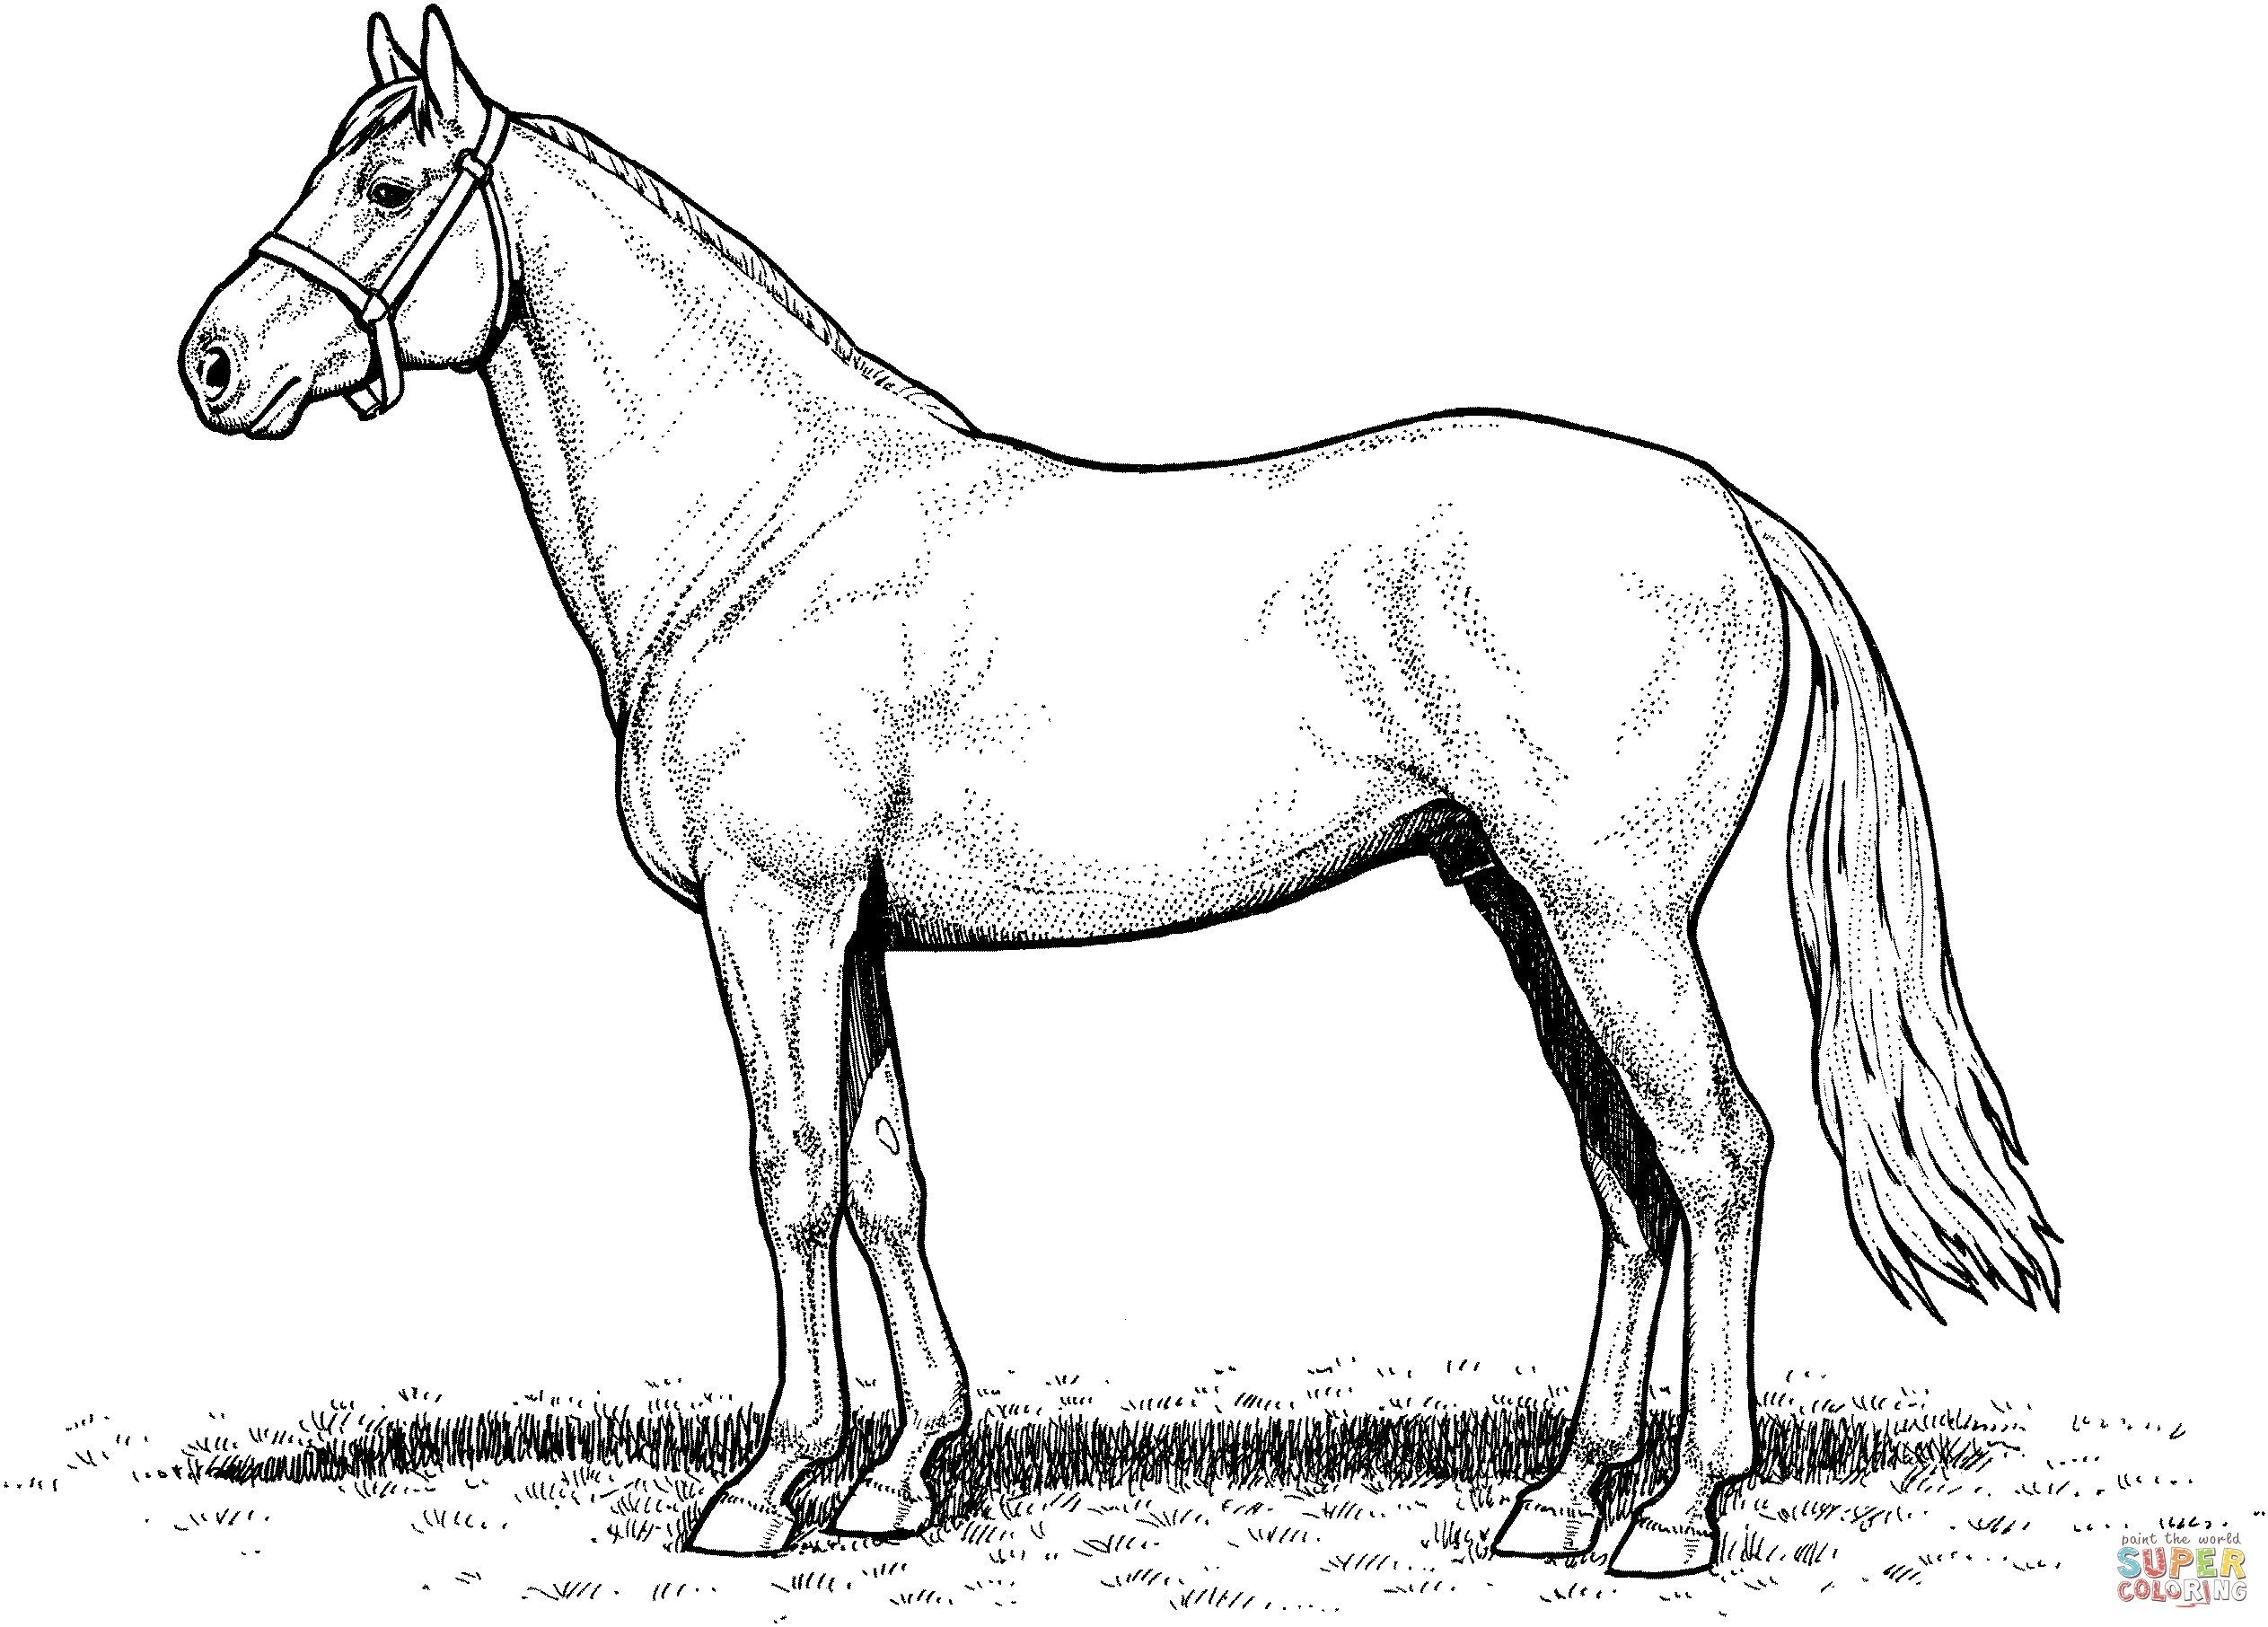 Horses In Barn Coloring Page Google Search Horse Coloring Pages Horse Coloring Horse Coloring Books